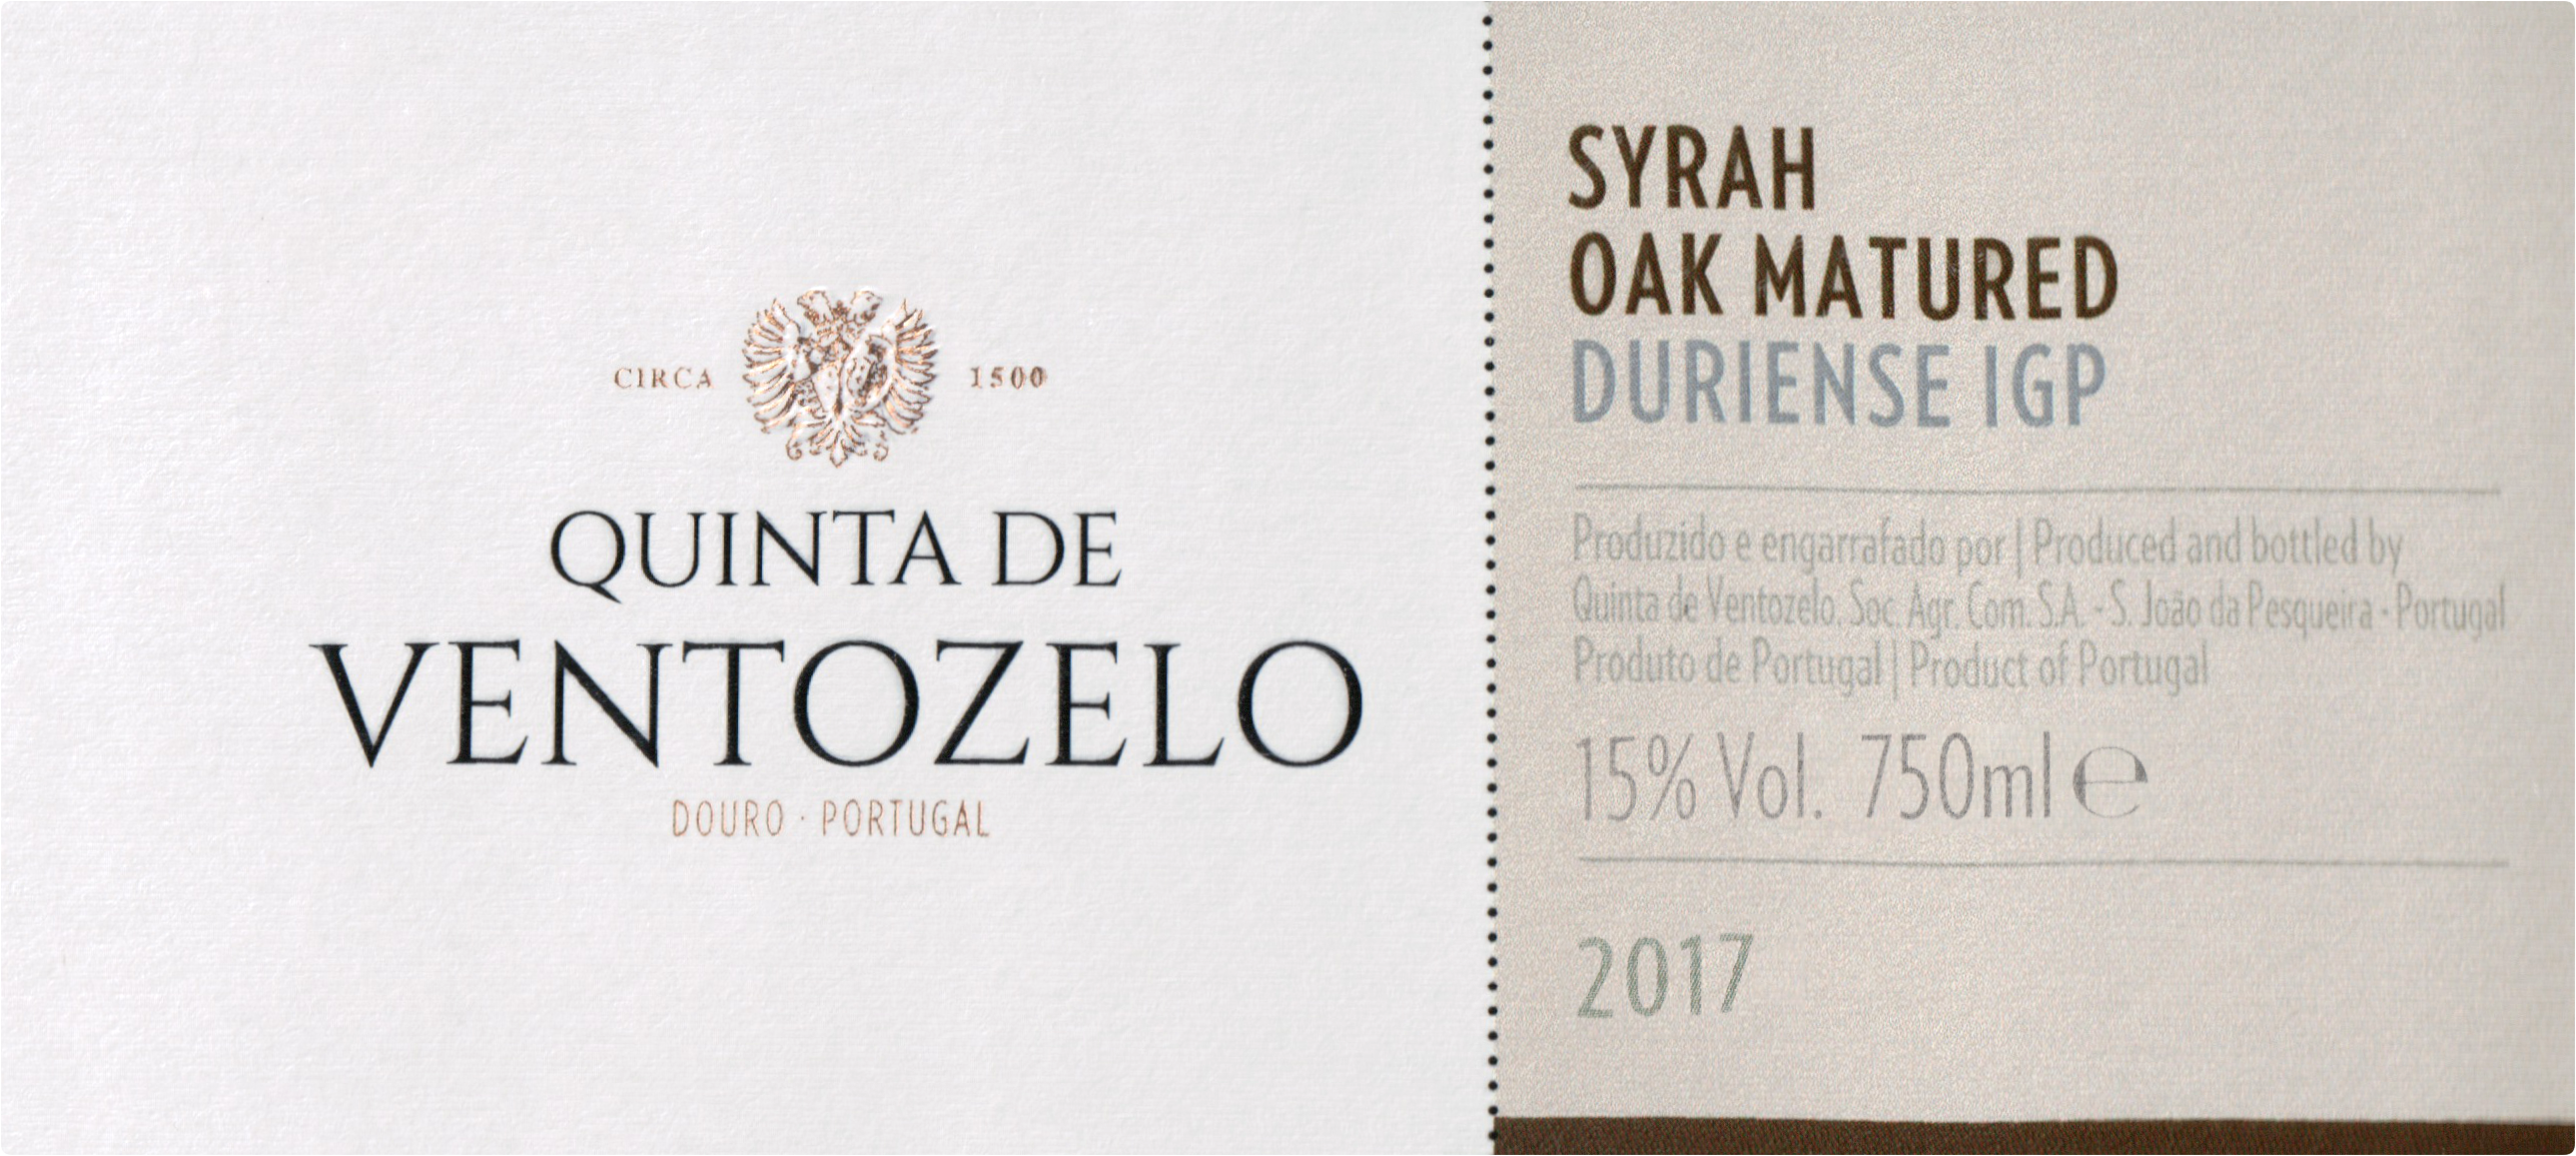 Quinta De Ventozelo Oak Matured Syrah 2017